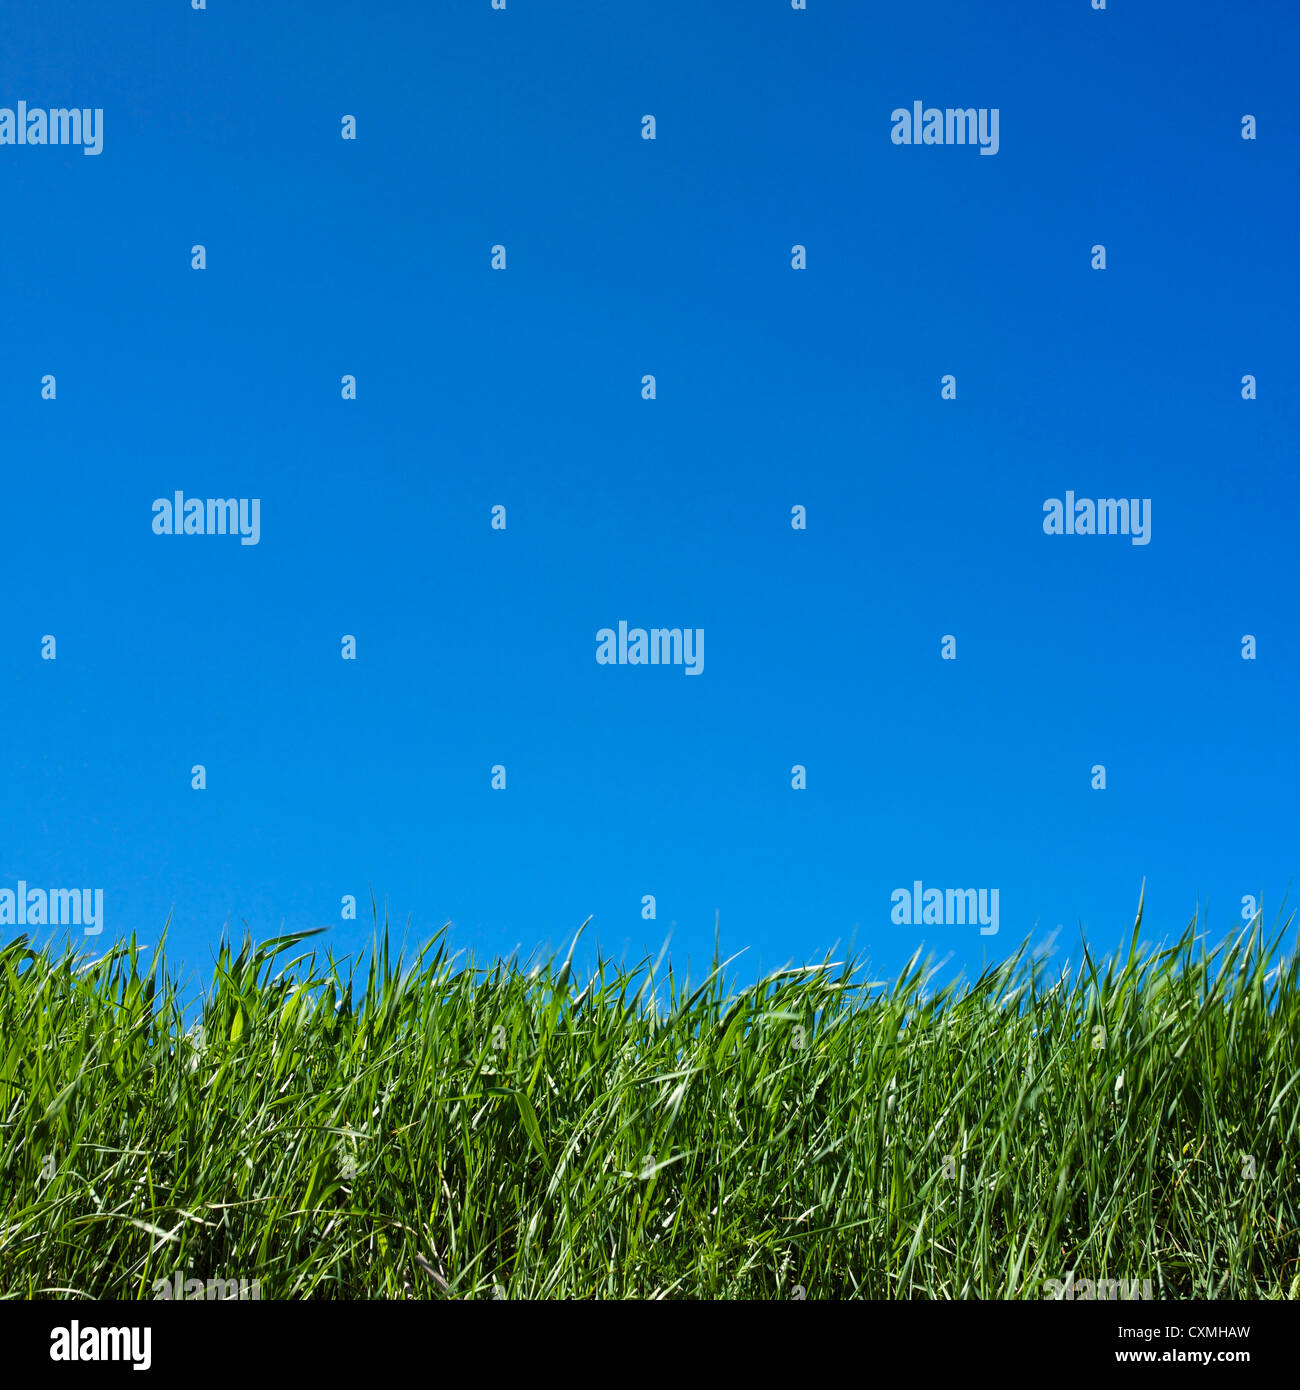 Grass close up et fond de ciel bleu Photo Stock